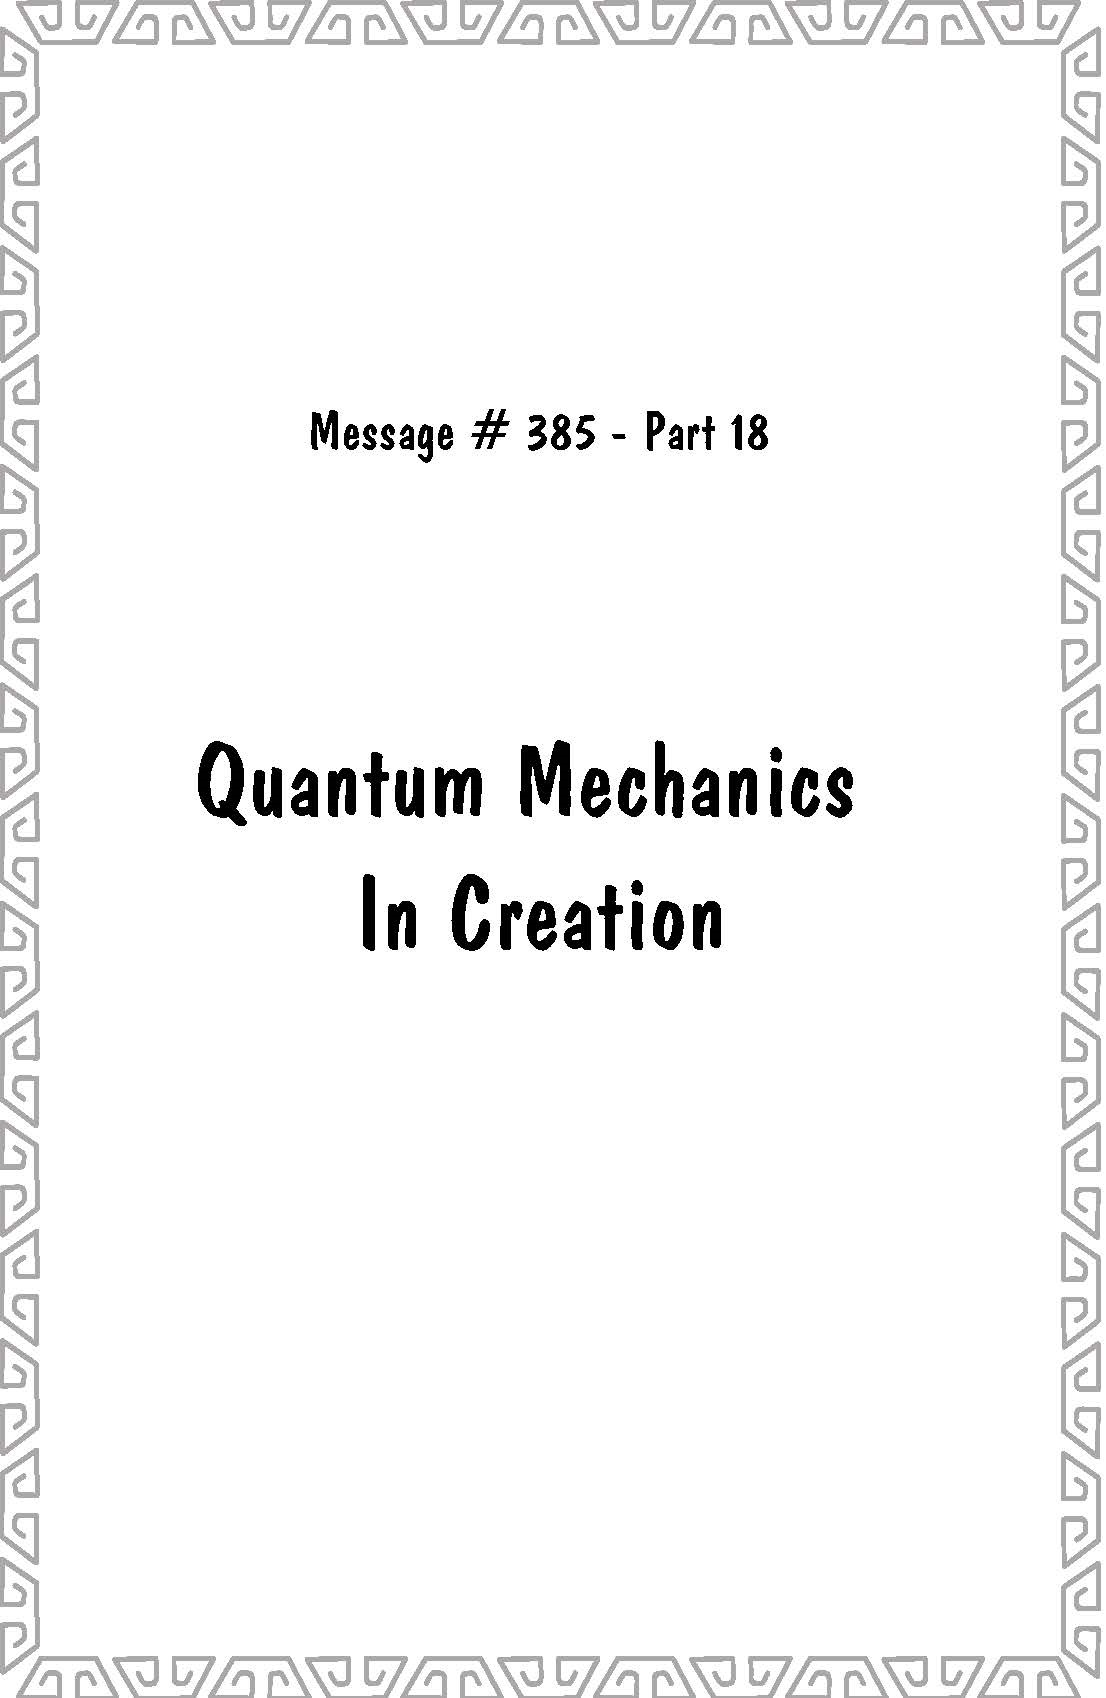 QuantumMechanicsInCreation.LEM.385.18.Cover.040816.72dpi